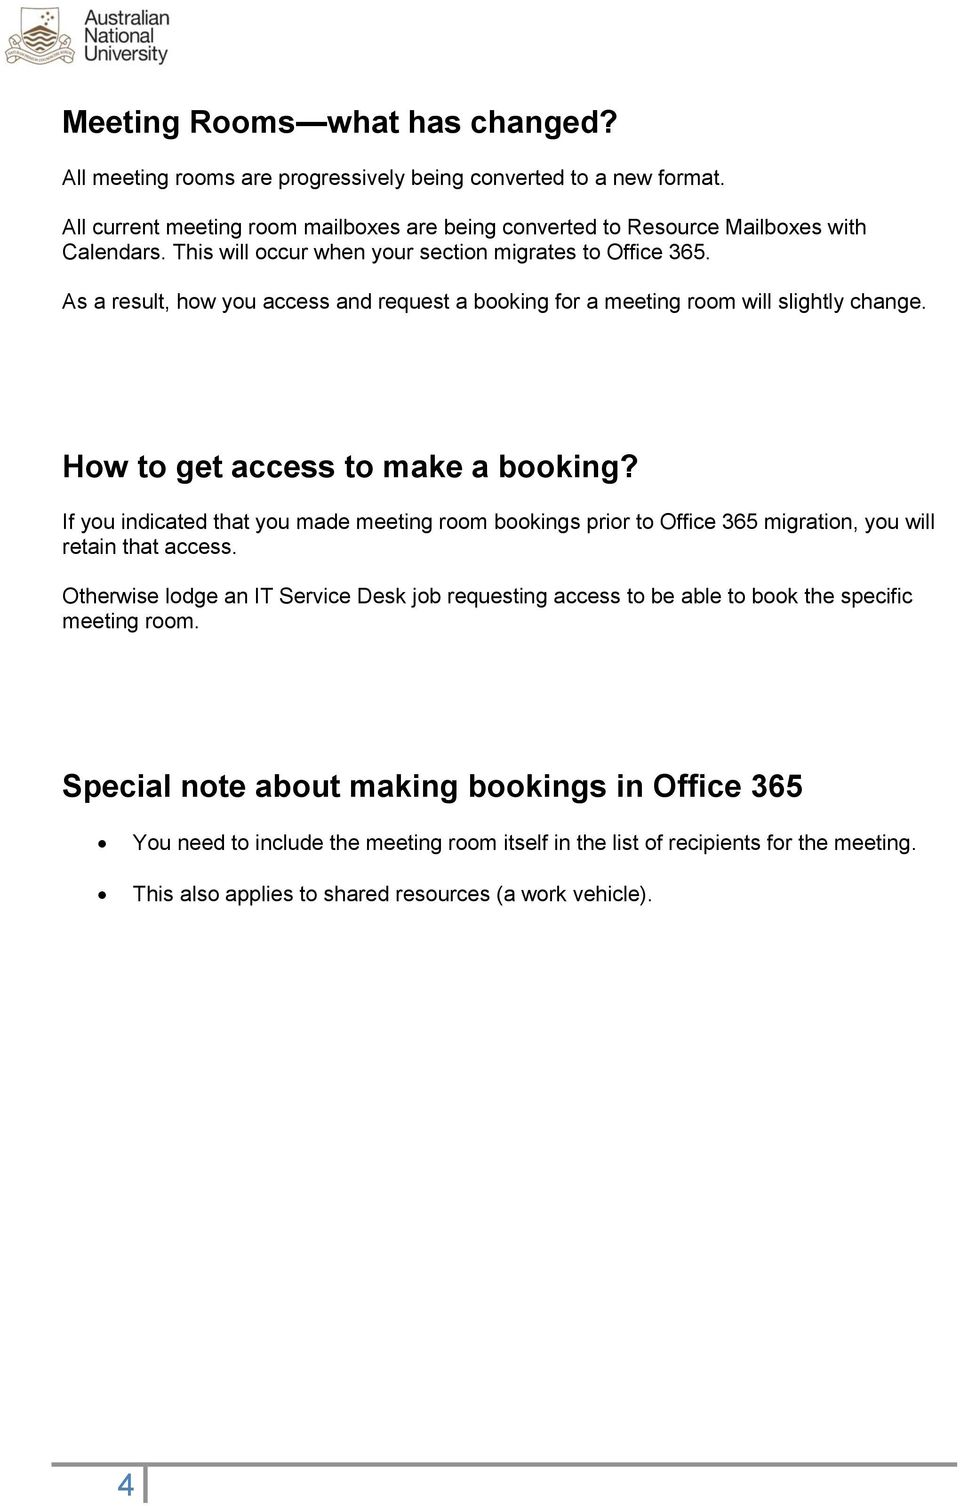 Microsoft Office 365 how to make a booking for meeting rooms